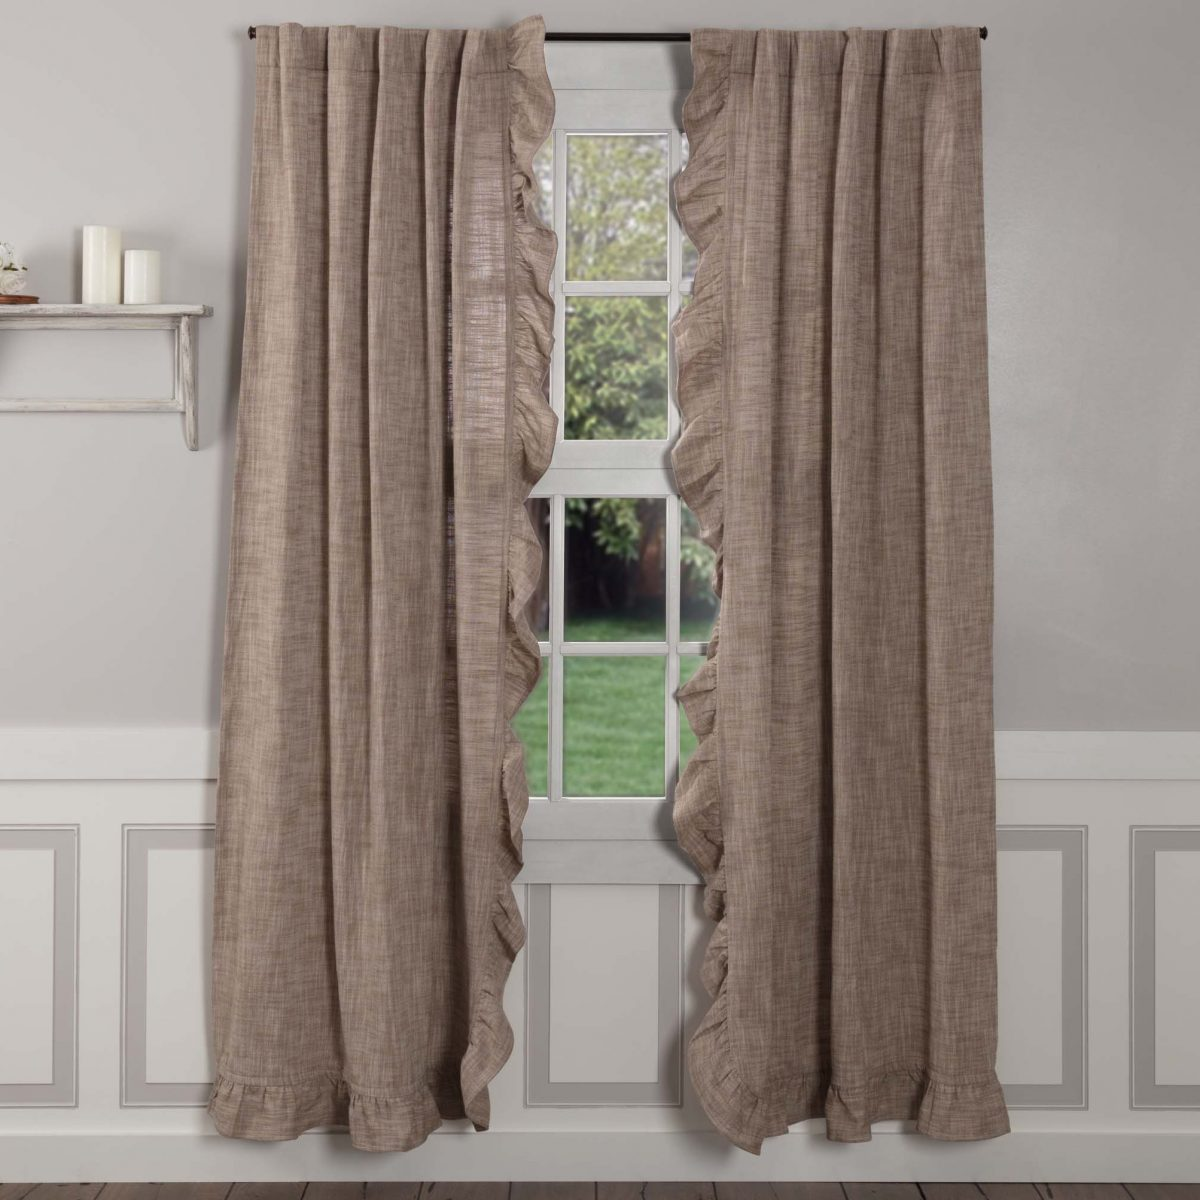 Buy Country Curtains & Farmhouse Style Decor - Free Shipping